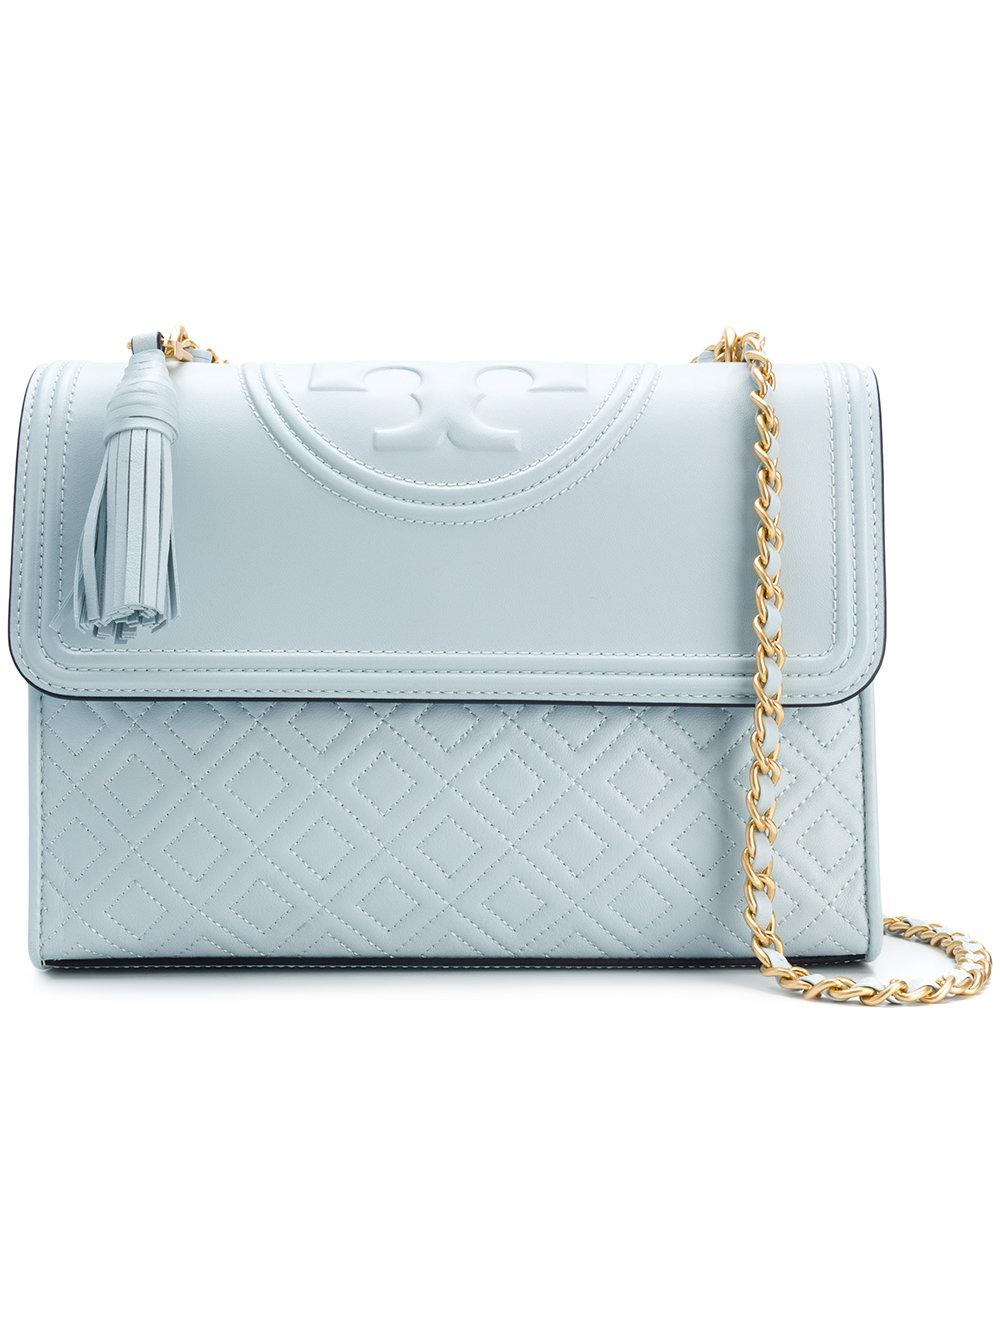 e7ce67261 Tory Burch Fleming Convertible Shoulder Bag | ModeSens